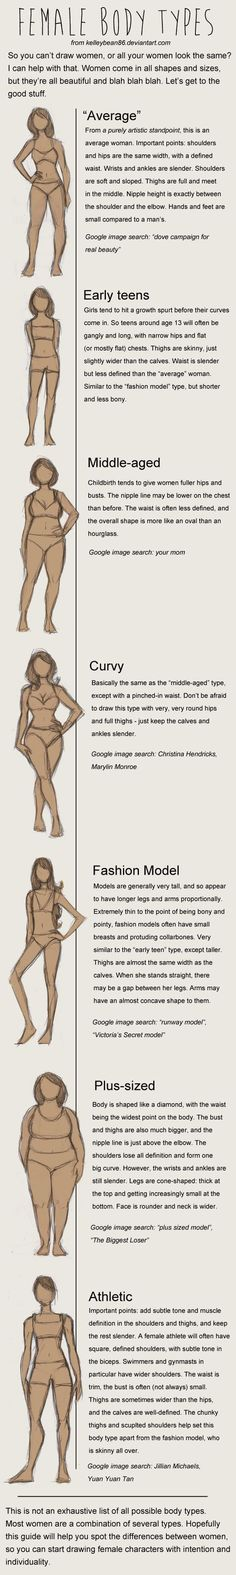 Draw Female Body Types by ~kelleybean86 on deviantART: